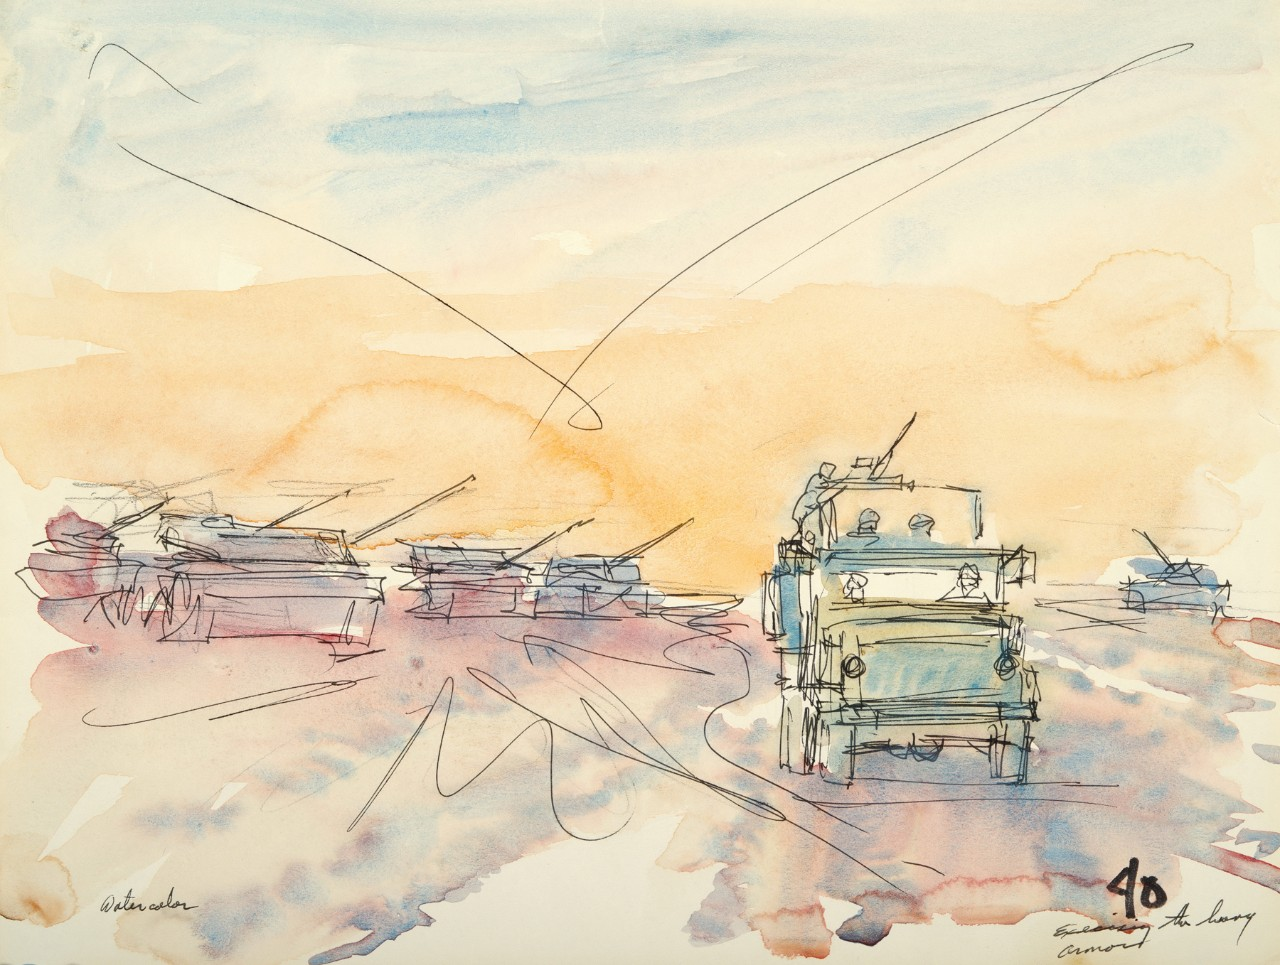 Four tanks are in the background as a small Humvee drives in front of them with the sun setting in background